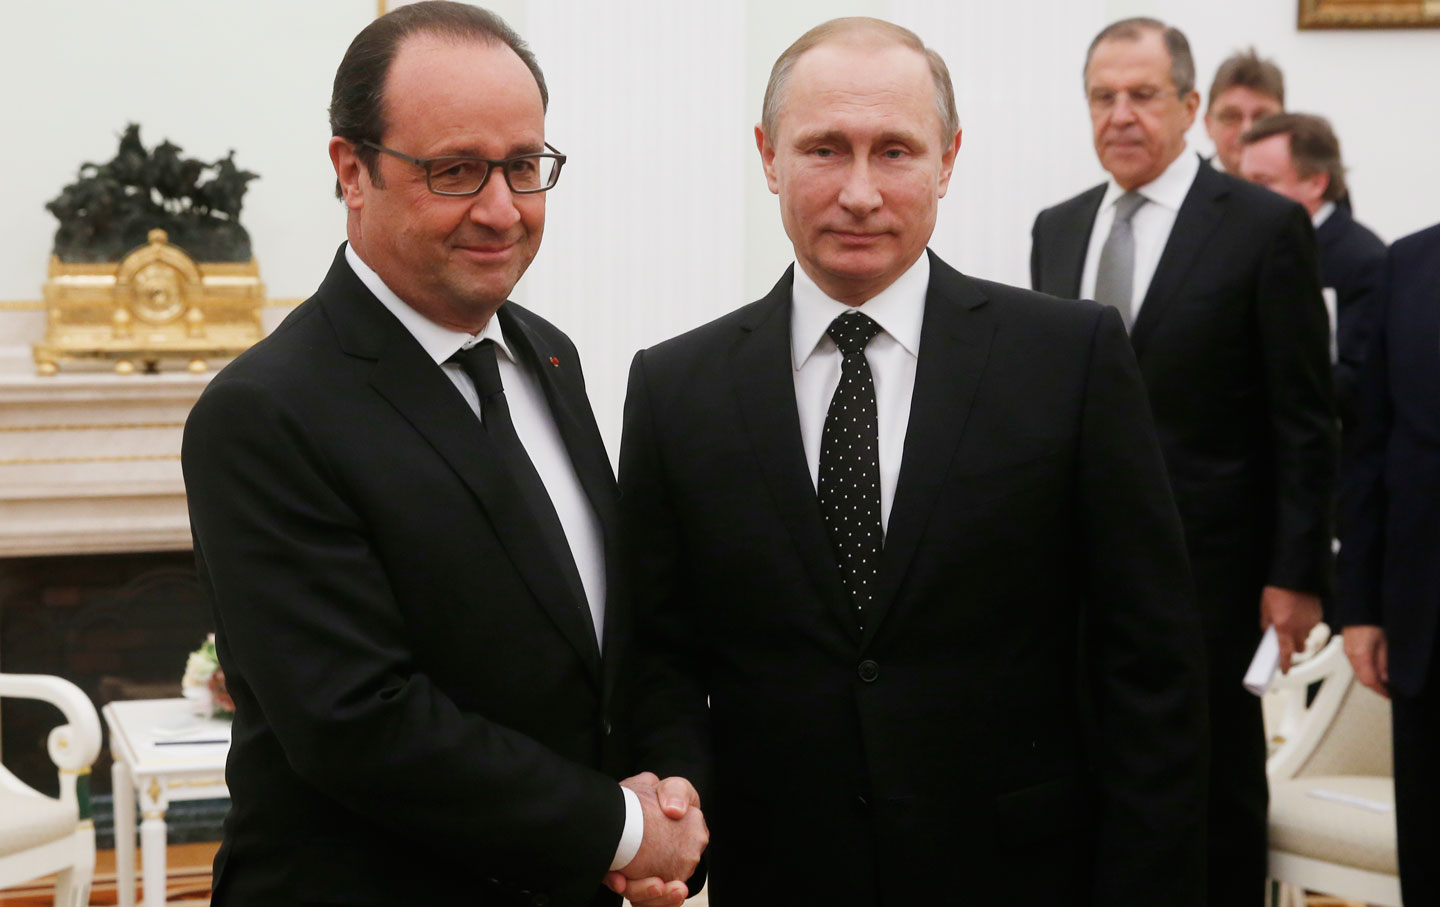 Putin_Hollande_ap_img